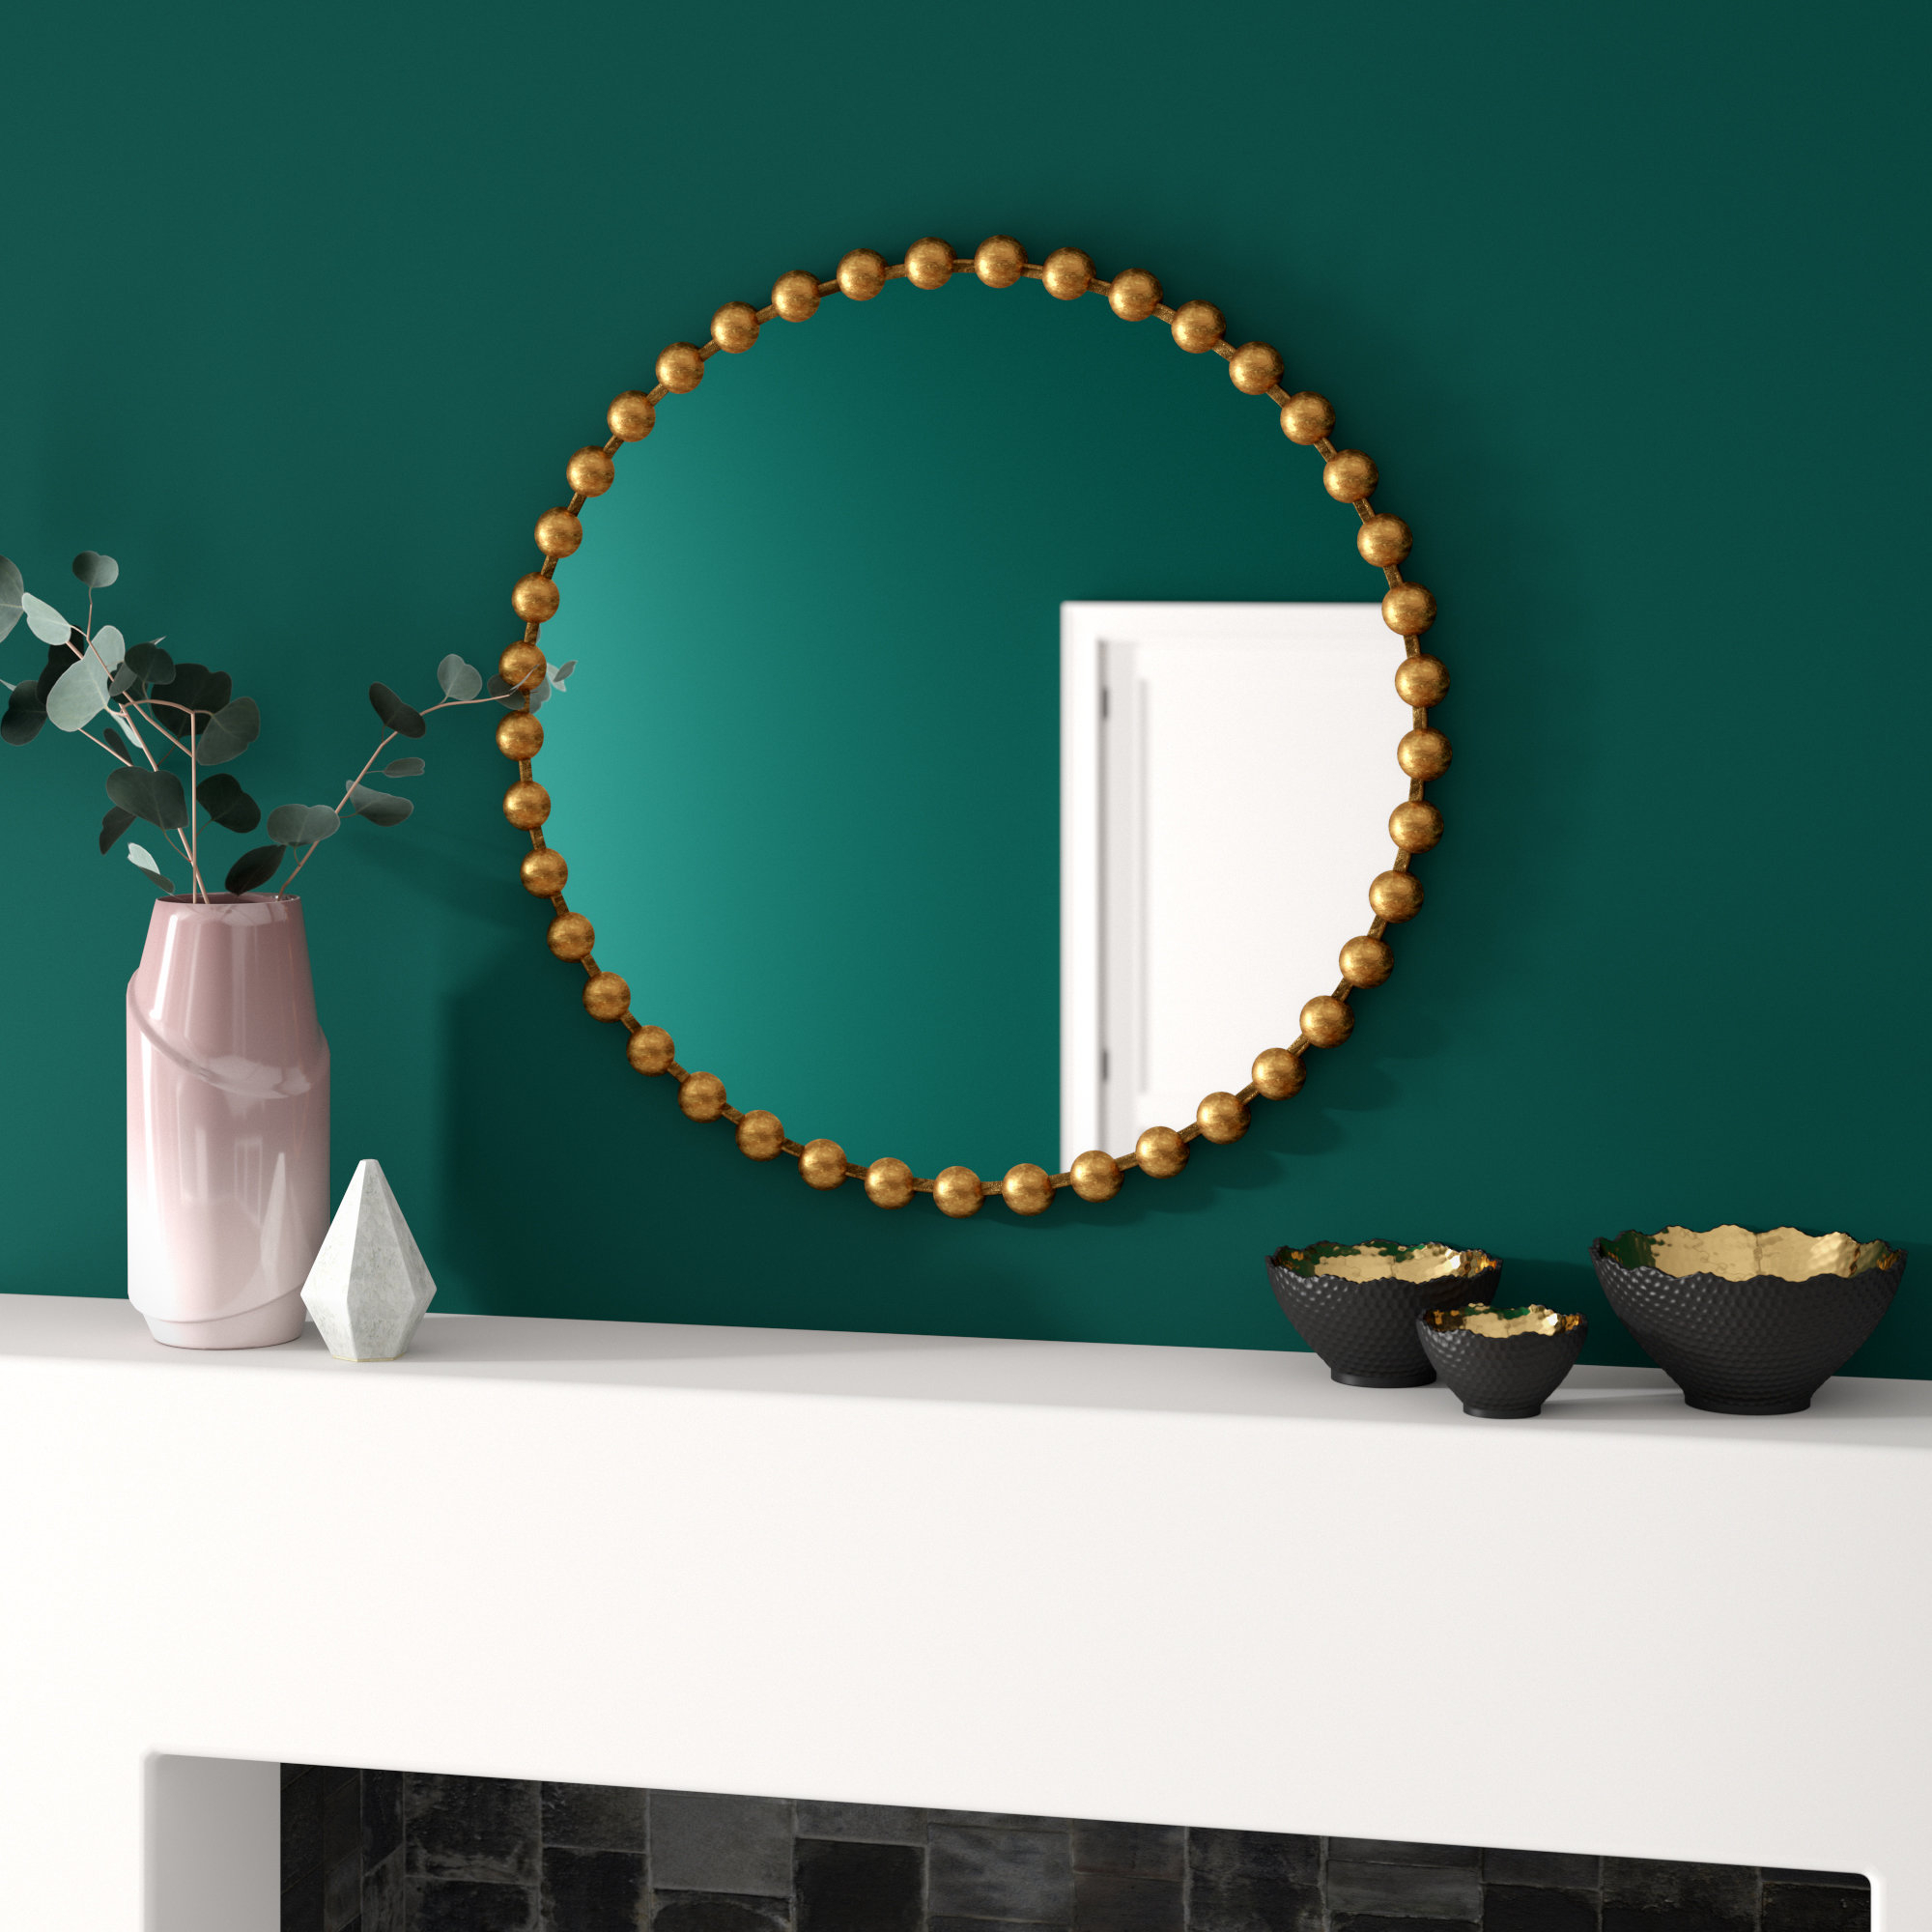 Marlowe Modern Accent Mirror Regarding Widely Used Diamondville Modern & Contemporary Distressed Accent Mirrors (View 2 of 20)